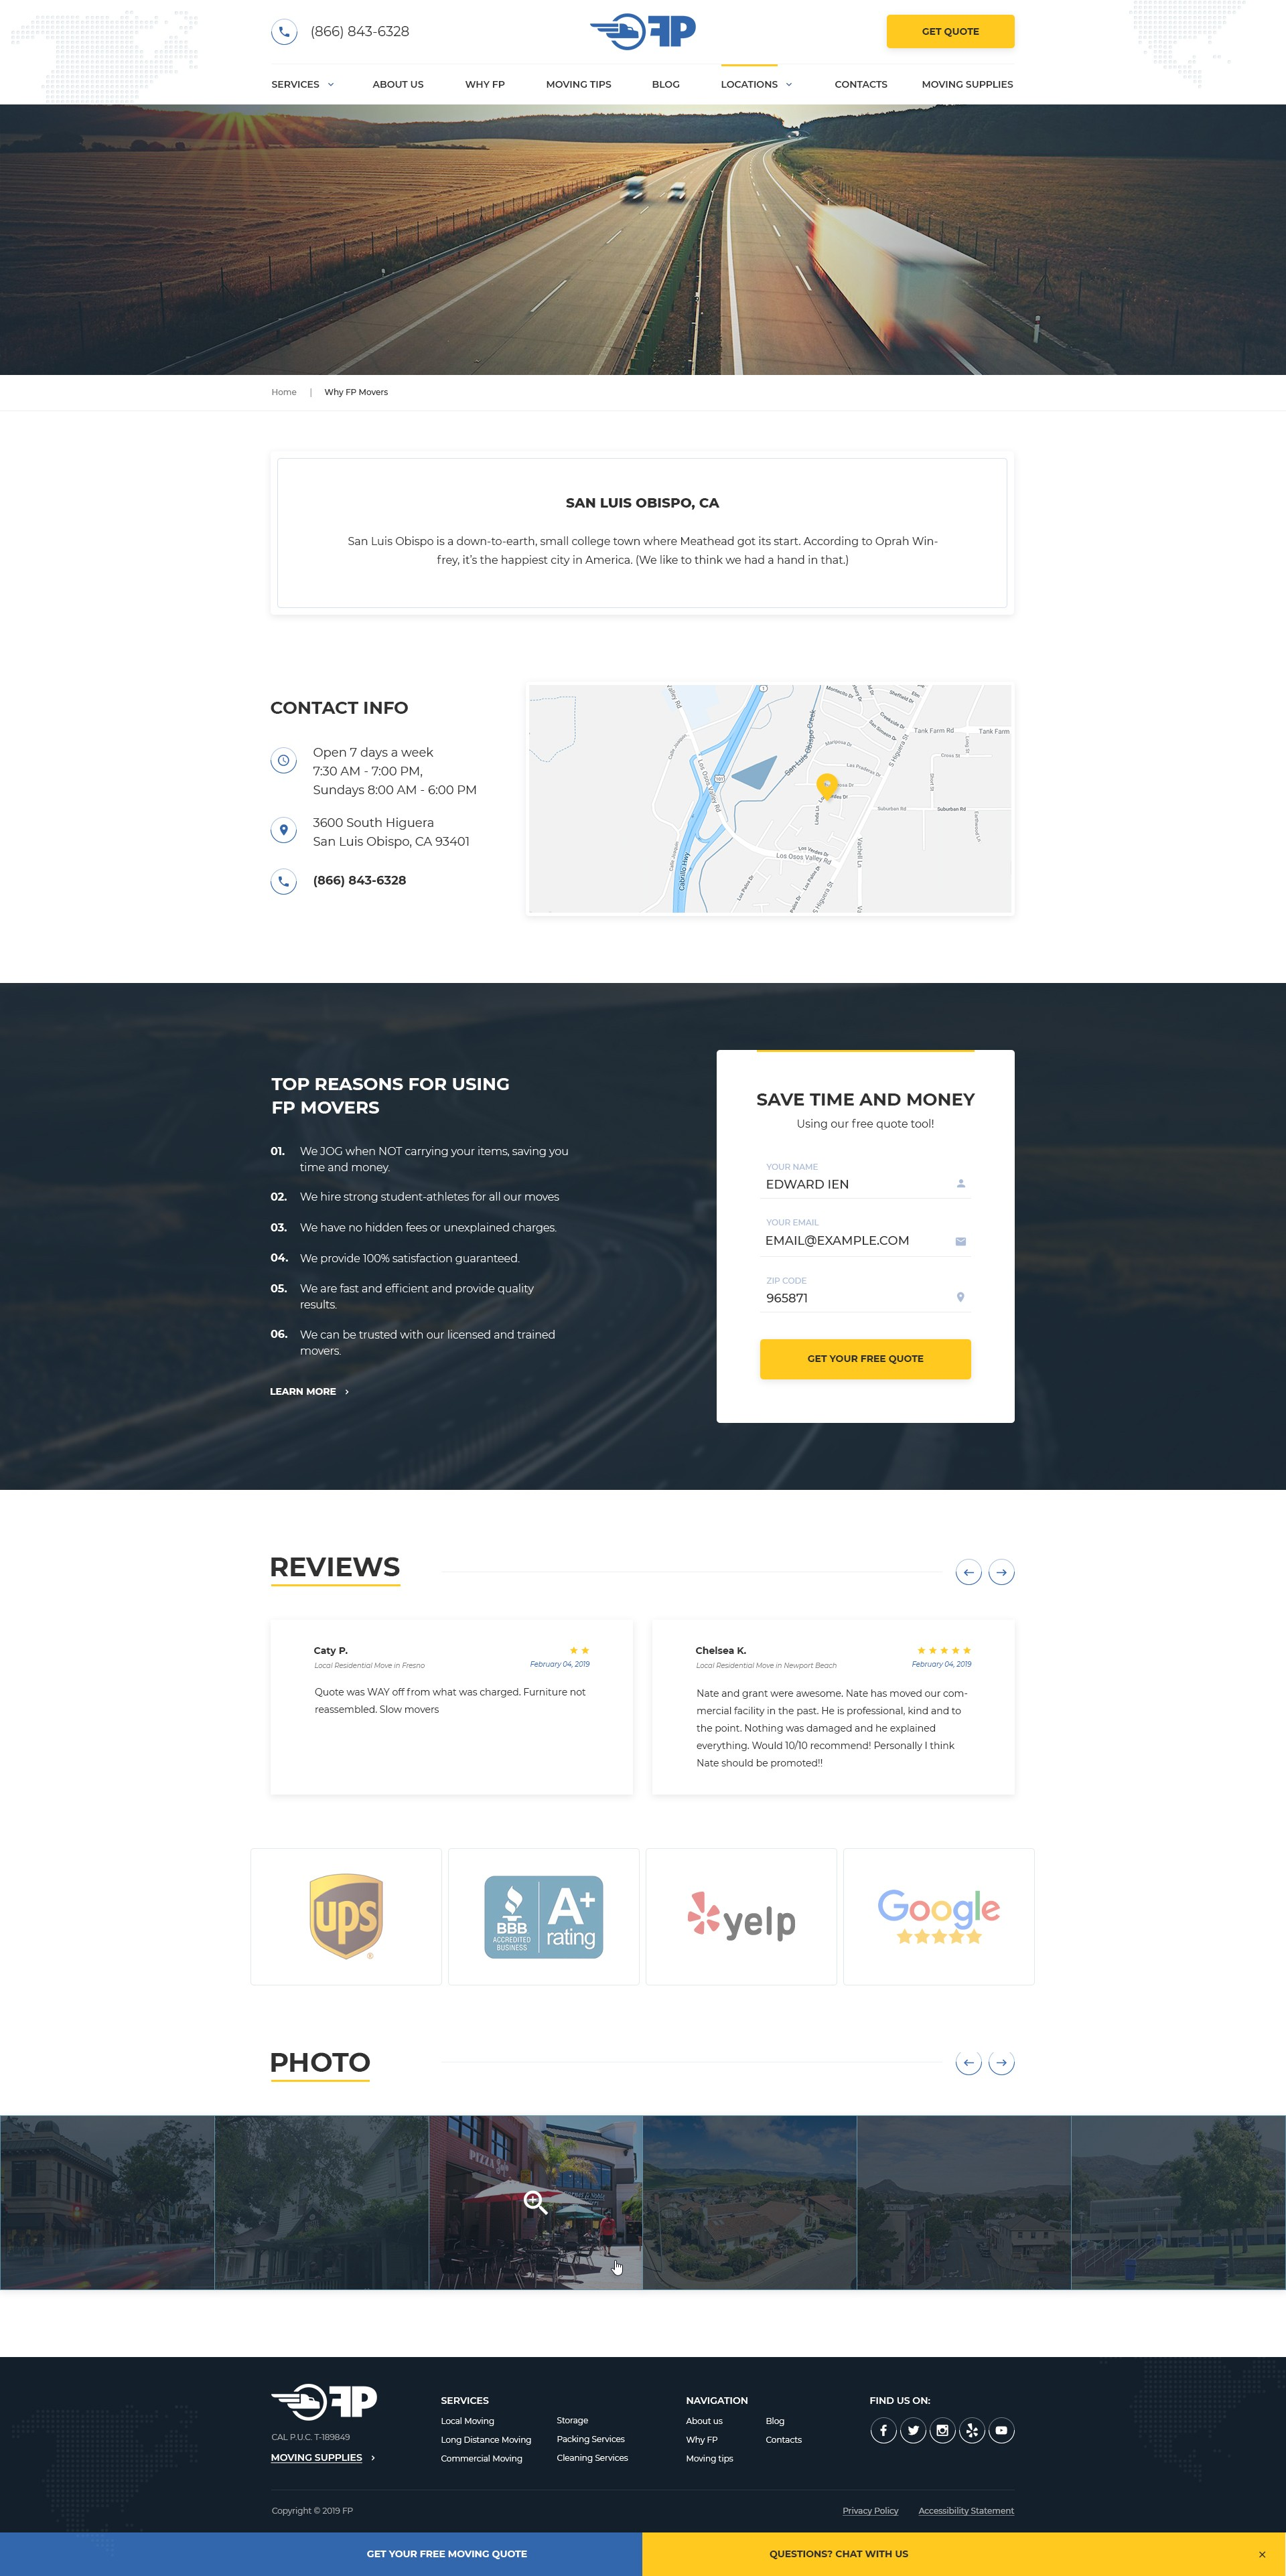 Movers_design_08_Location_page_1.0